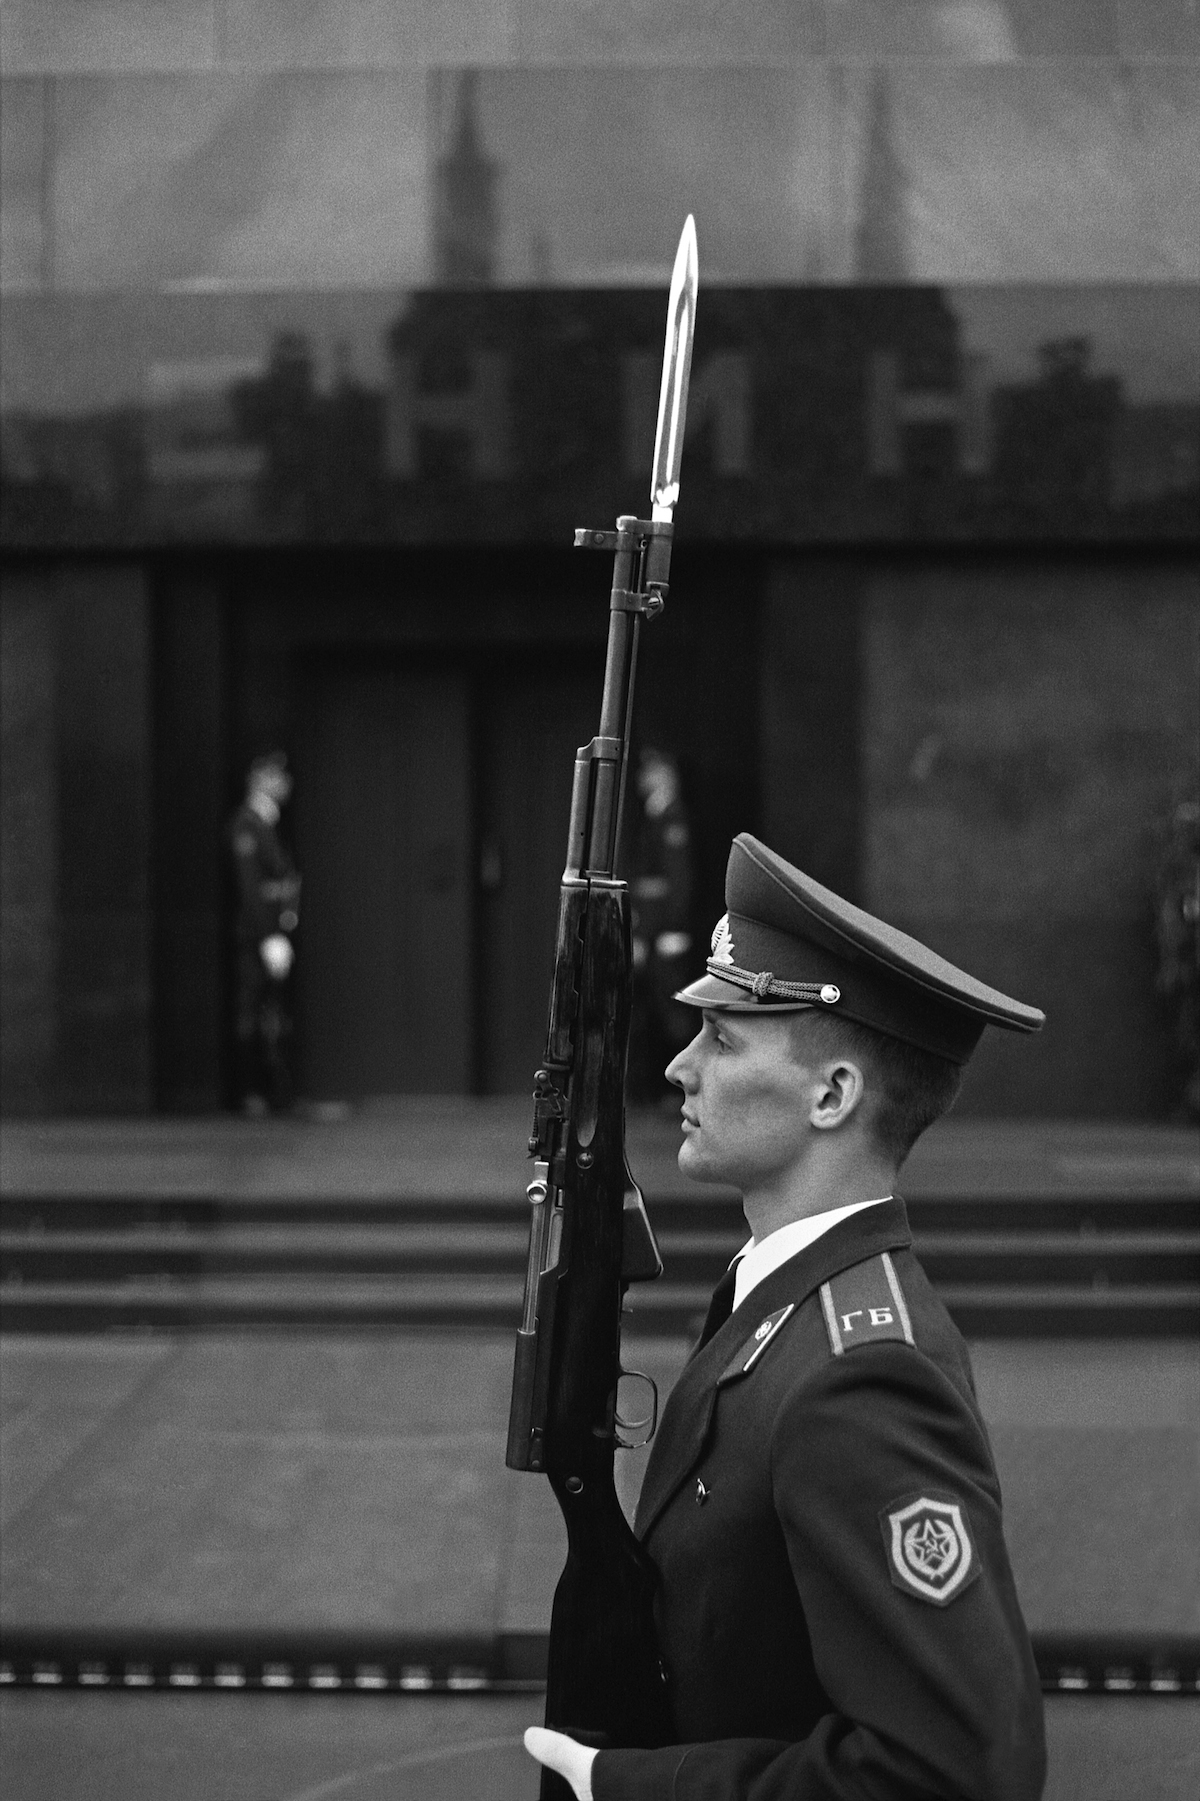 001-MOSCOW-KGB-guard-at-Lenins-tomb-RGC-SMALL.jpg